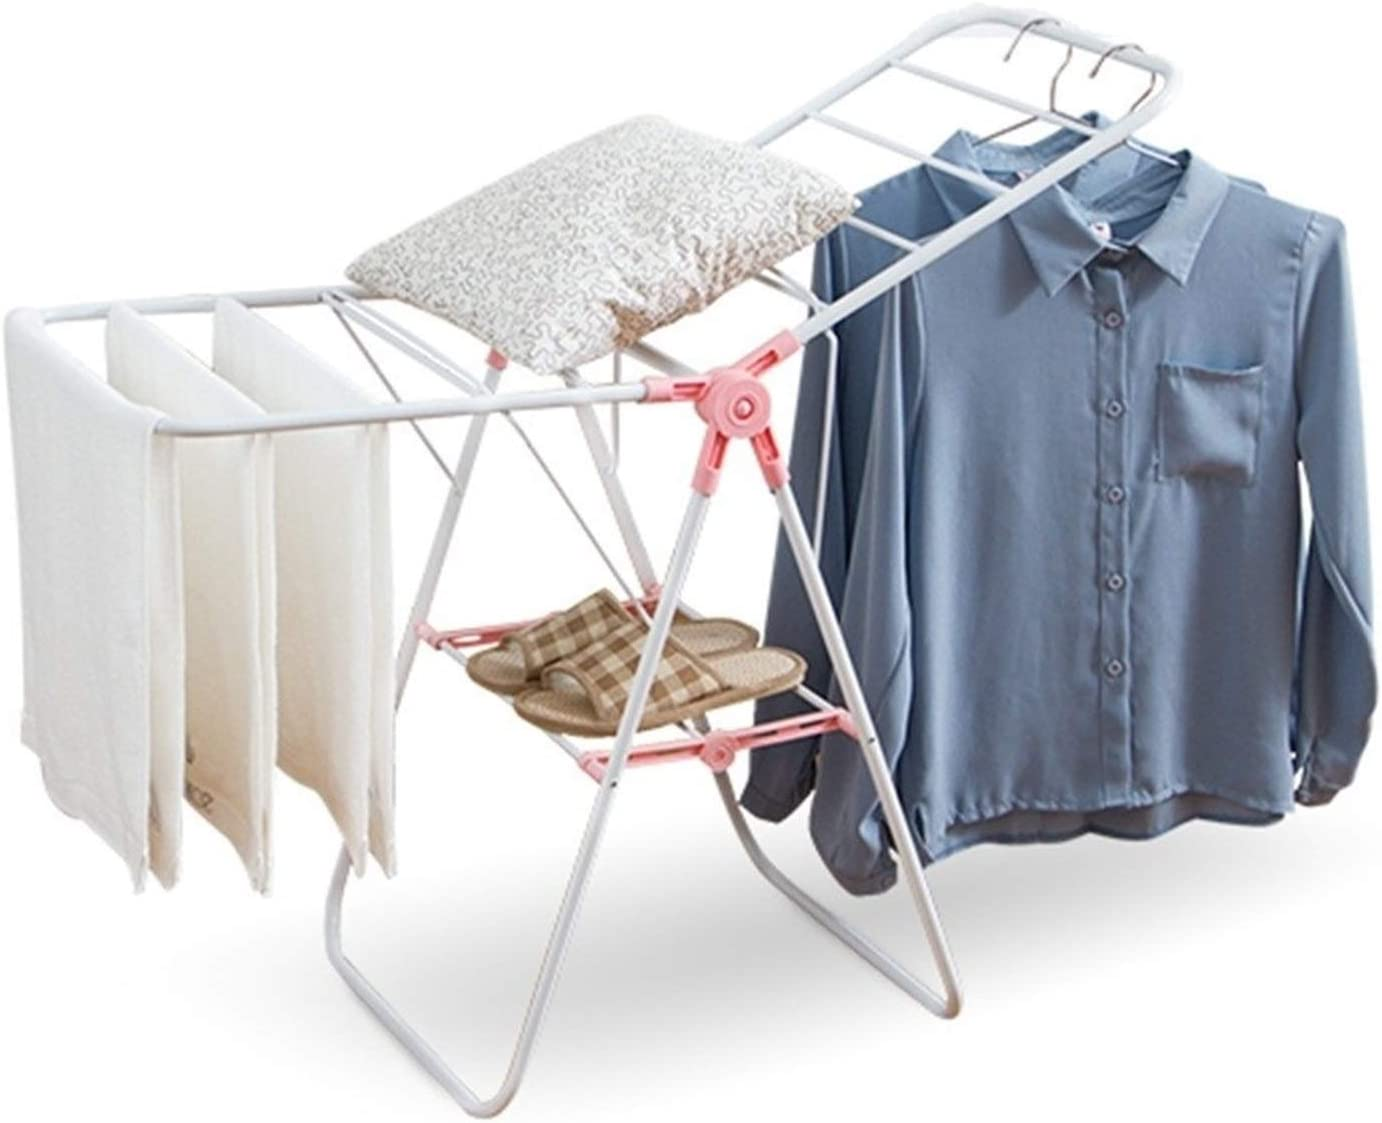 Clothes Drying Rack for Laundry Stainless Cheap mail order specialty Elegant store Airer 2-Tier